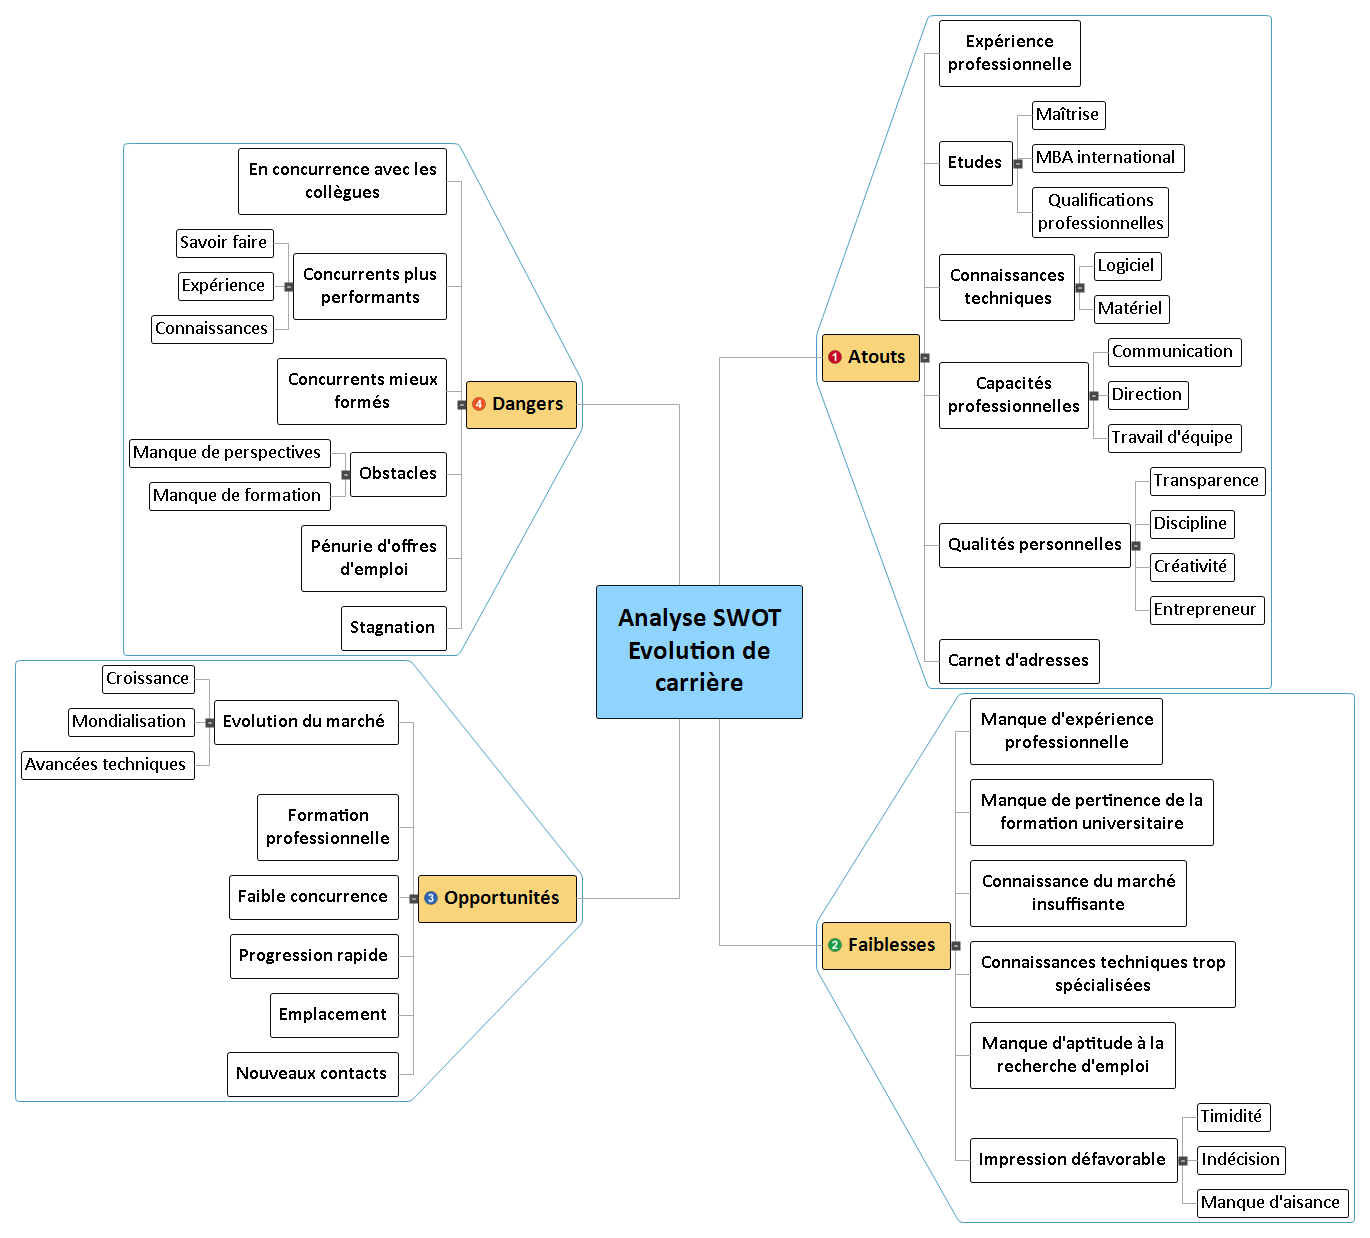 Analyse SWOT Evolution de carrière Mind Map